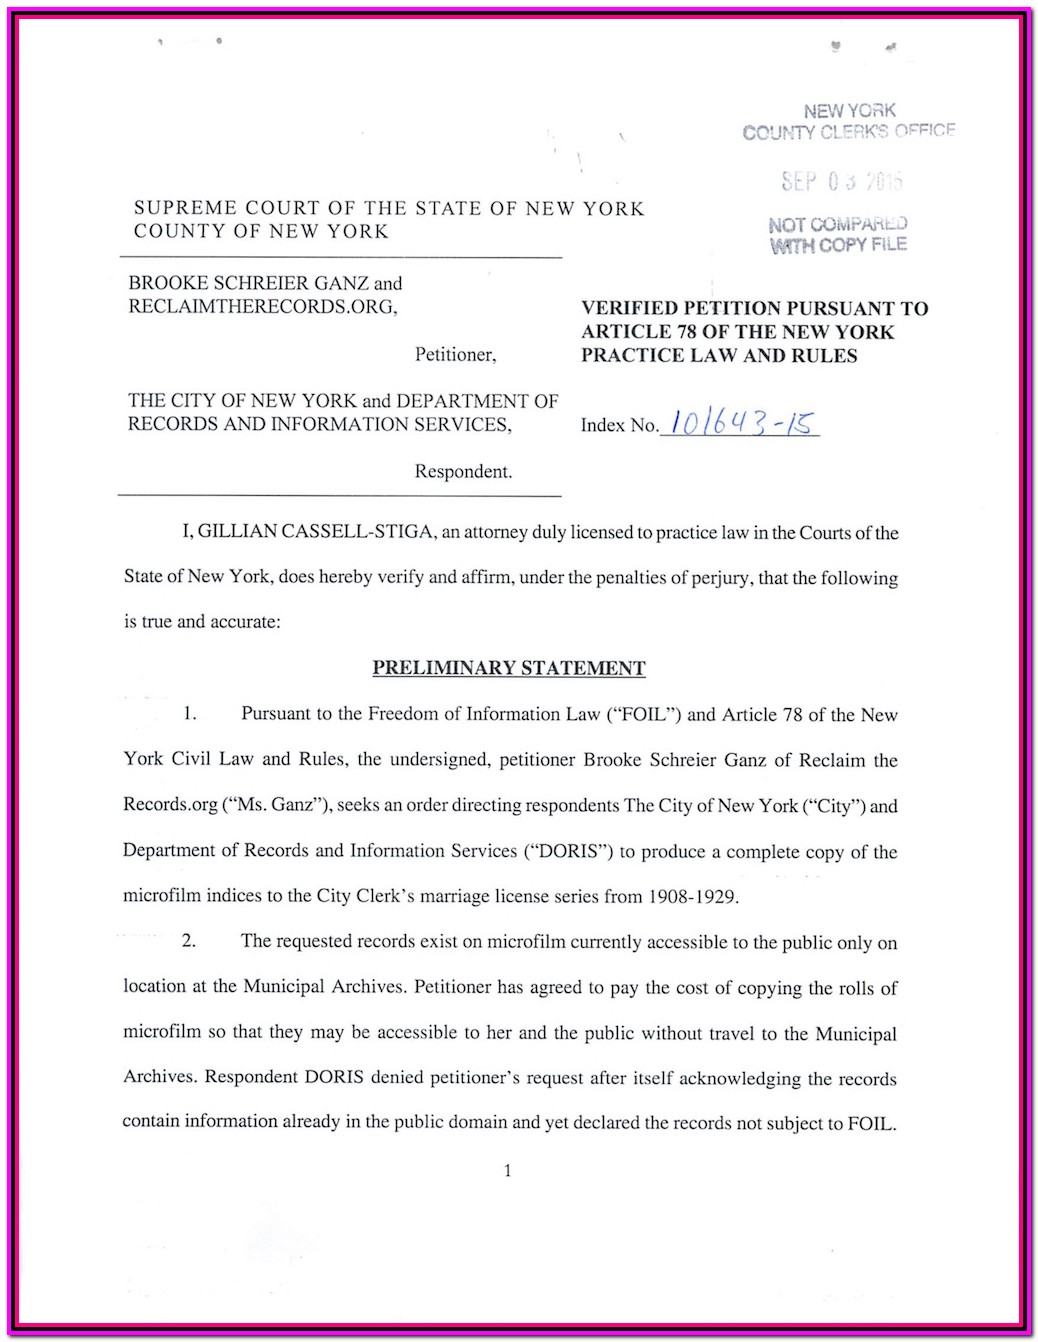 Uncontested Divorce Forms Nyc